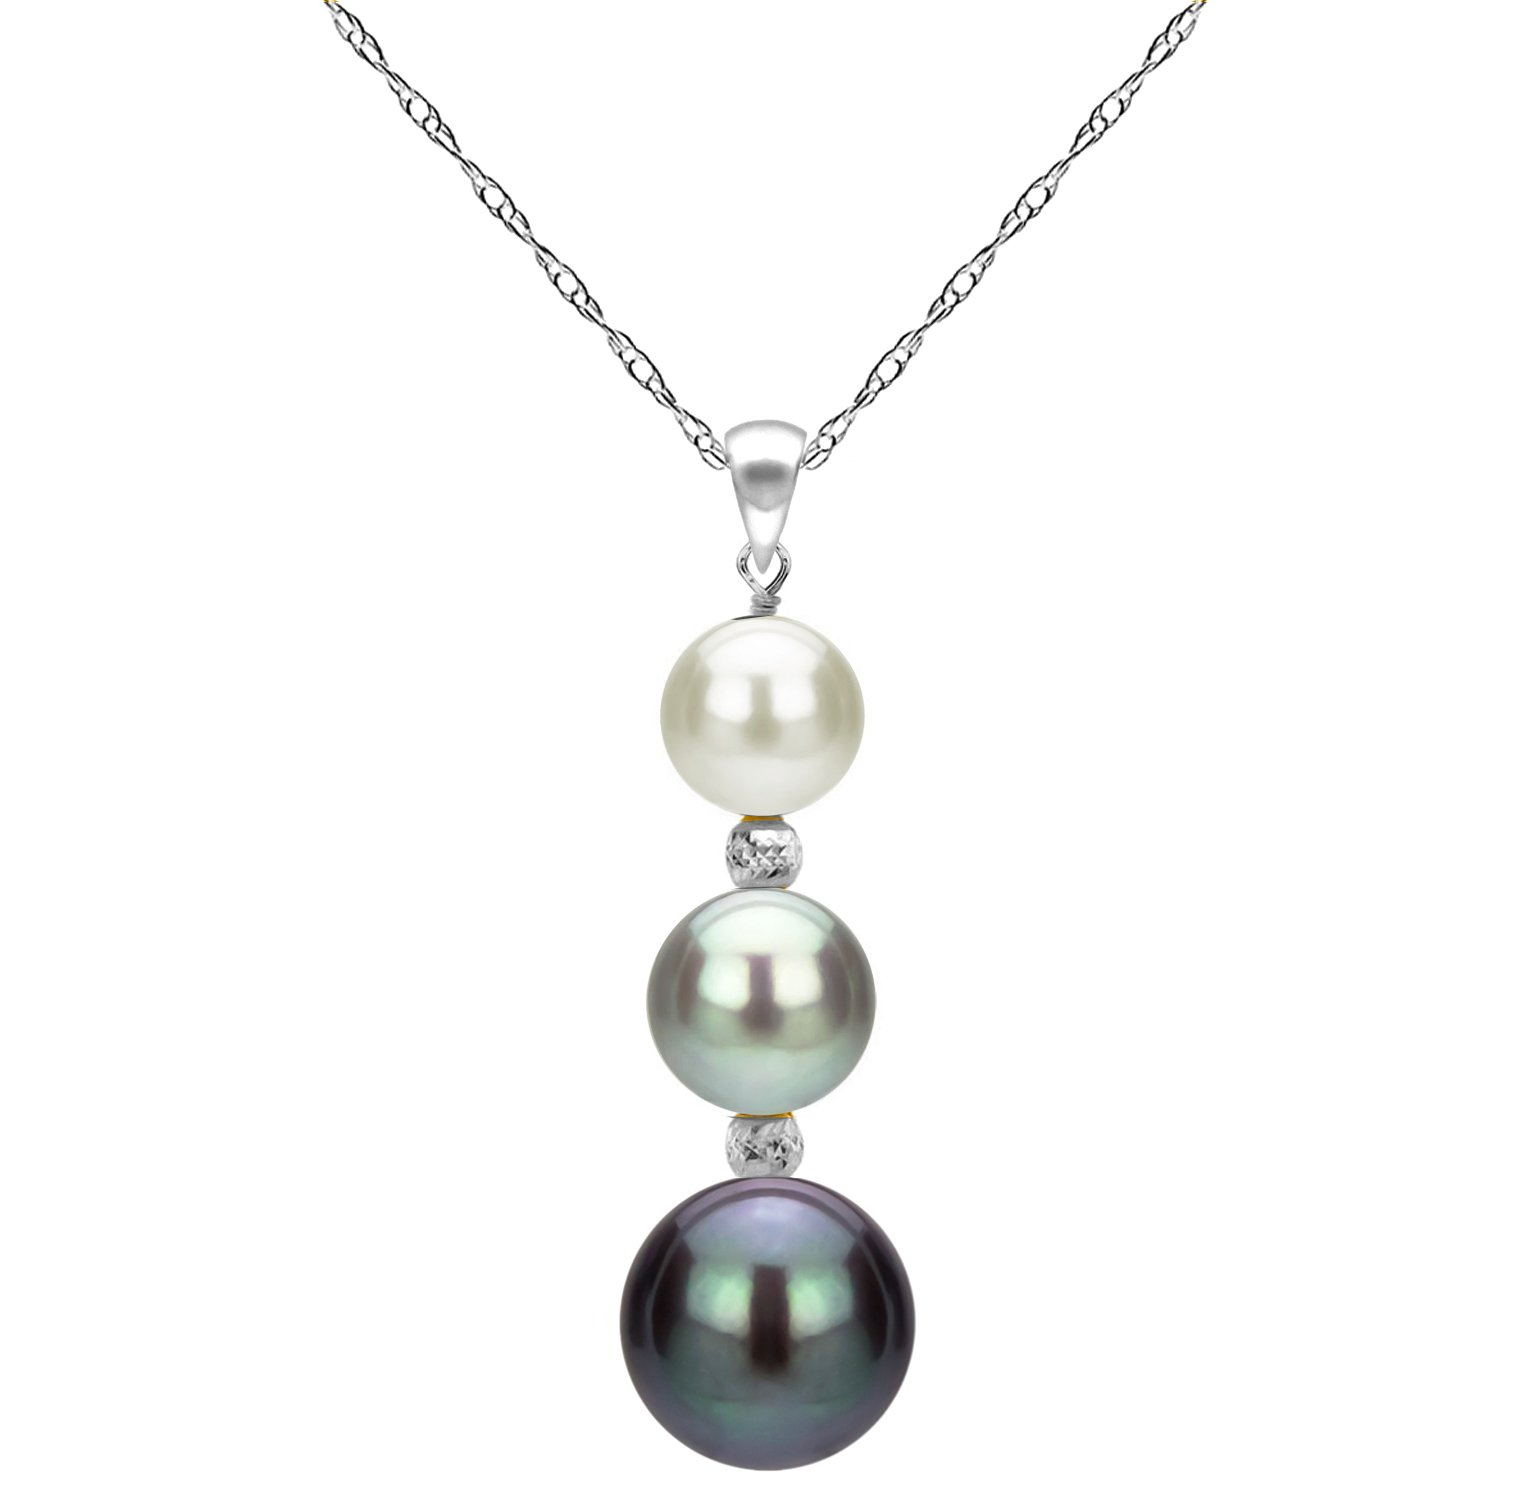 14k White Gold Graduated 5-9.5mm Multi-colors Freshwater Cultured Pearl Pendant Necklace, 18''